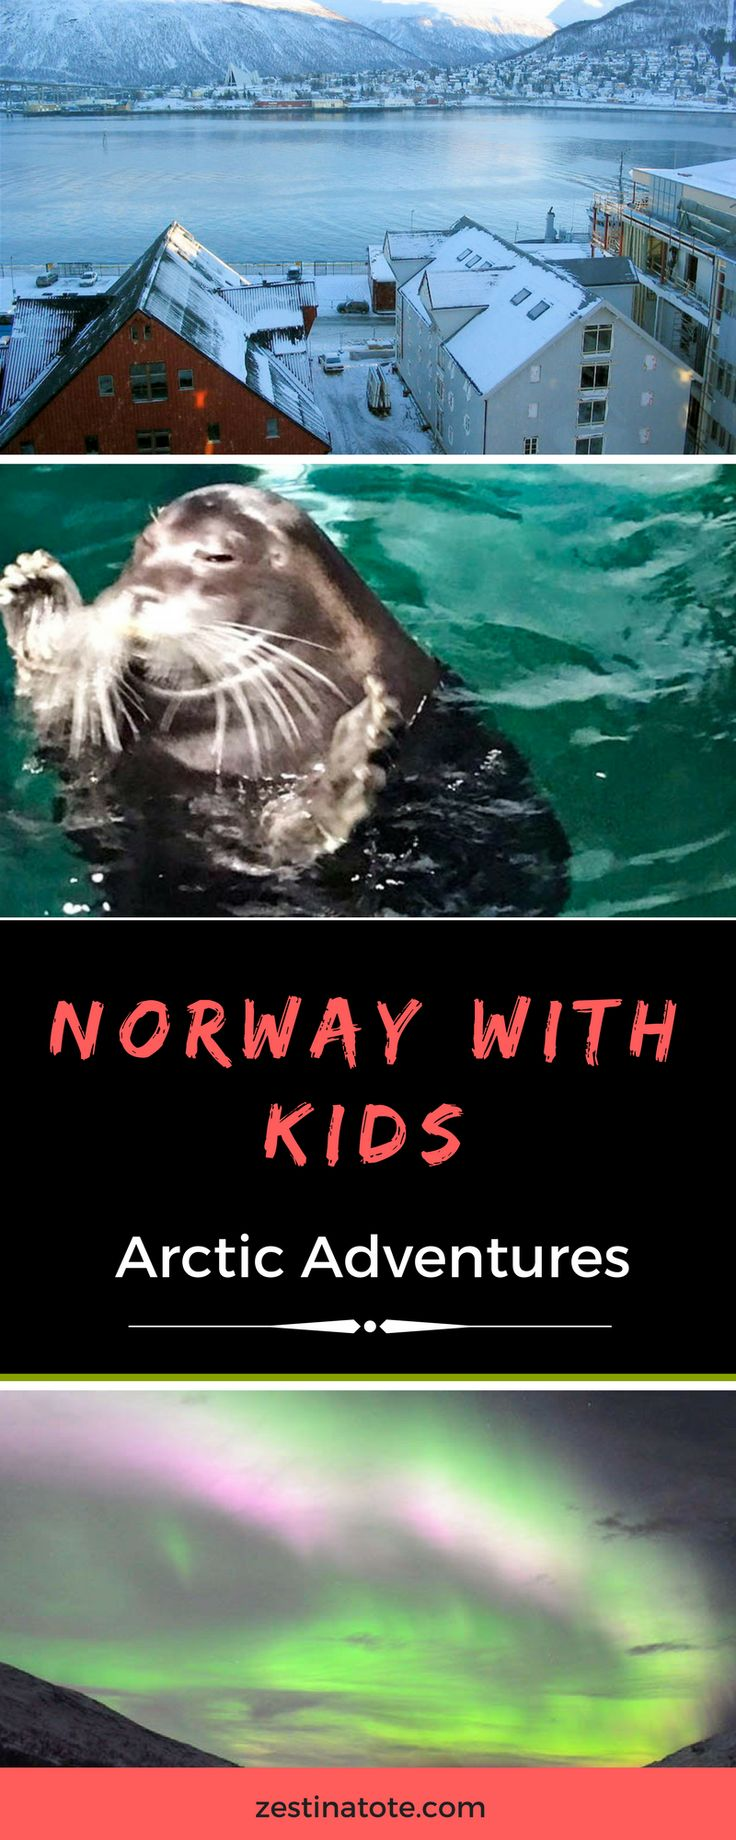 Norway is a dream #winter destination. See the Northern Lights, go for a husky dog sled ride, visit Polar Park, go whale watching. And take your kids with you! #norway #tromso #northernlights #visitnorway #norwaywintertrip #arcticadventures #huskysled #auroraborealis #polarpark #aquarium